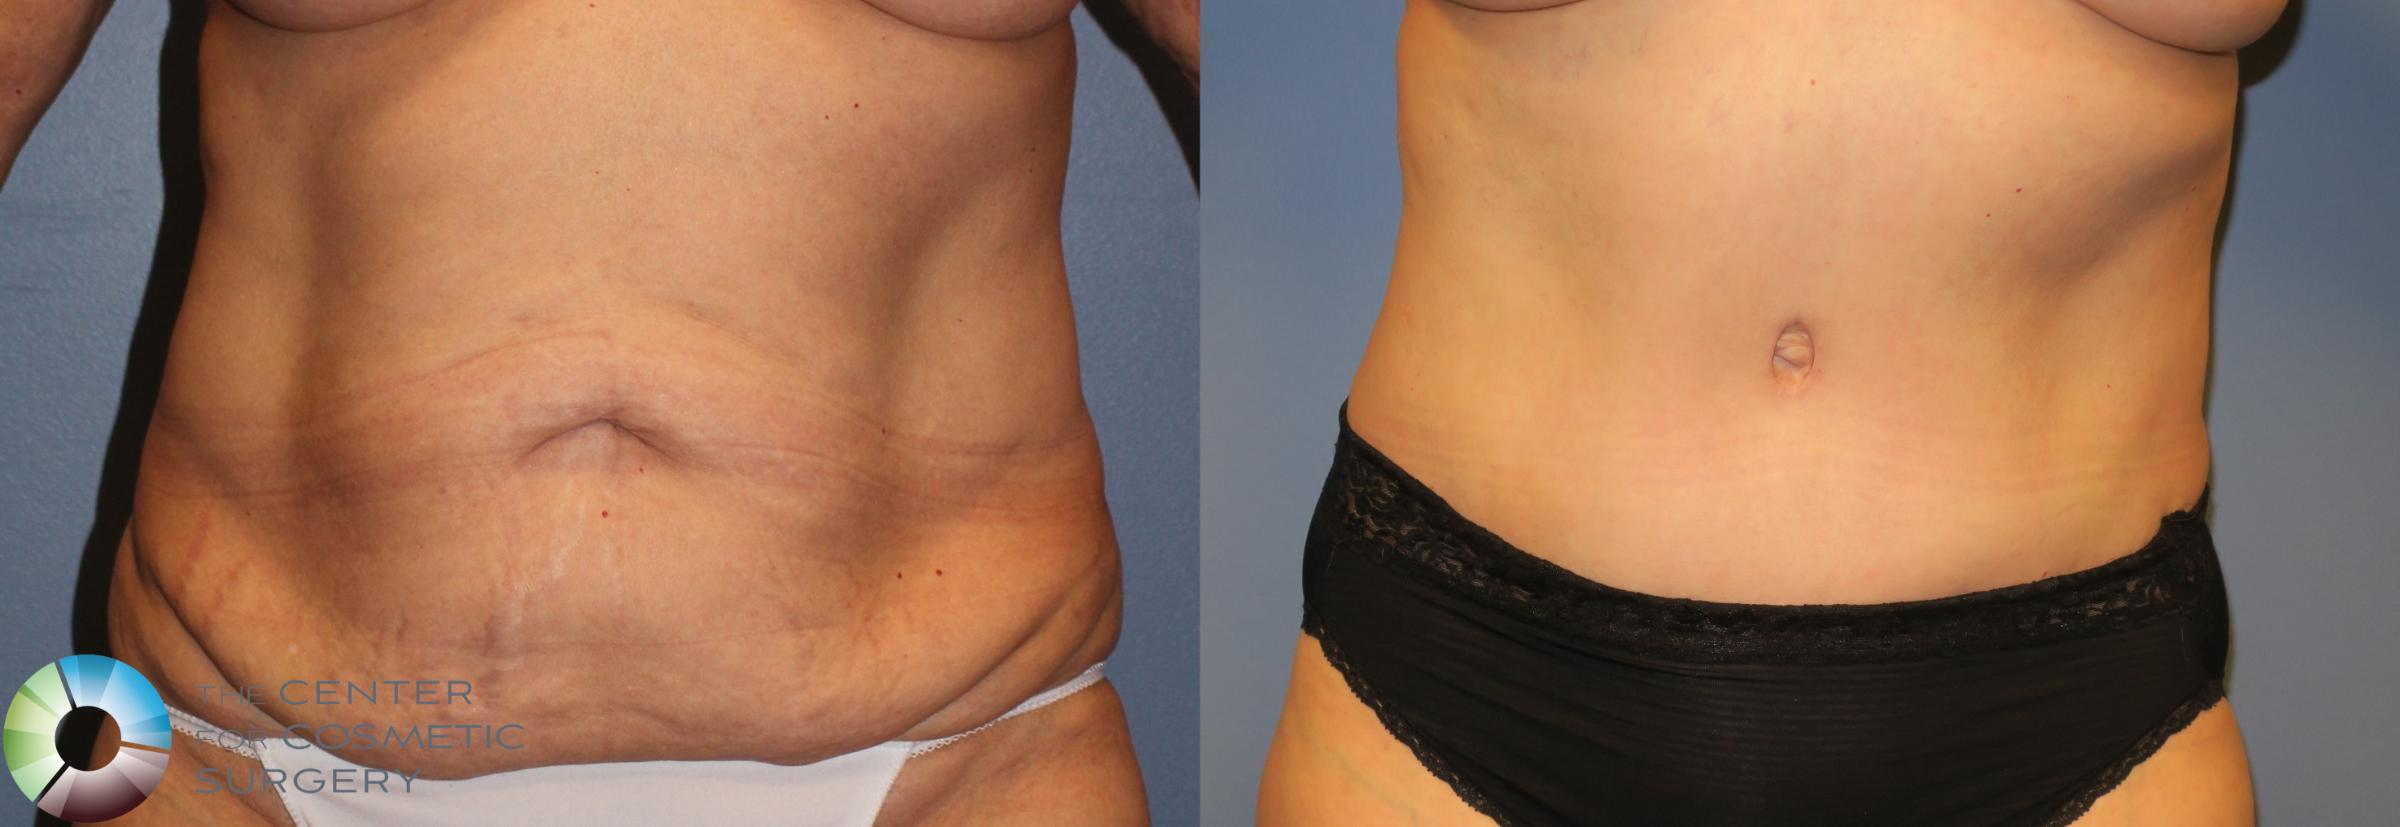 Tummy Tuck Case 962 Before & After View #3 | Golden, CO | The Center for Cosmetic Surgery